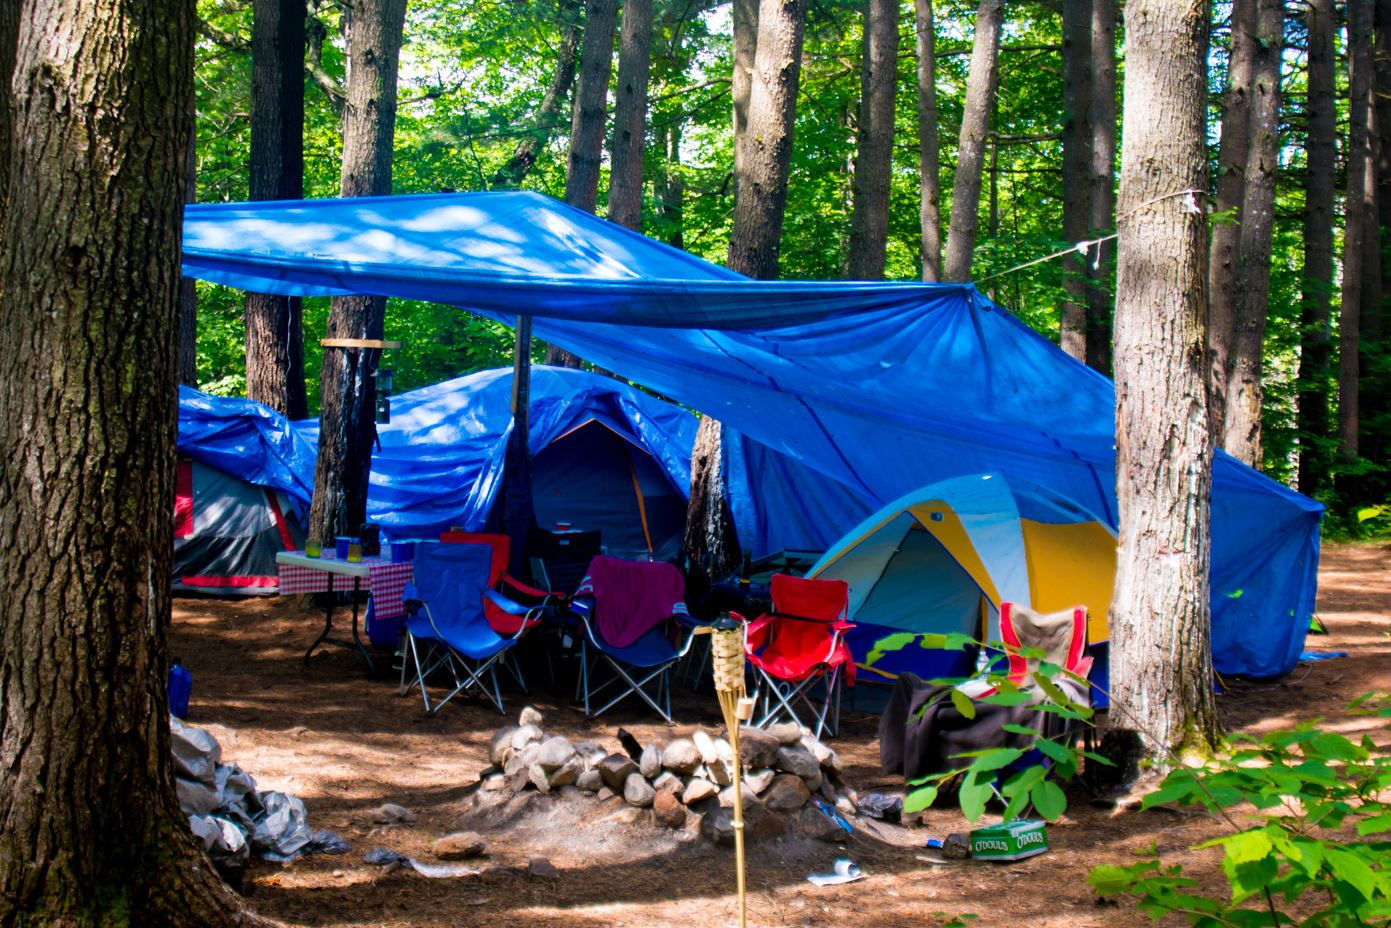 Camping_Tents_in_the_Woods by Jess Mann. jpg